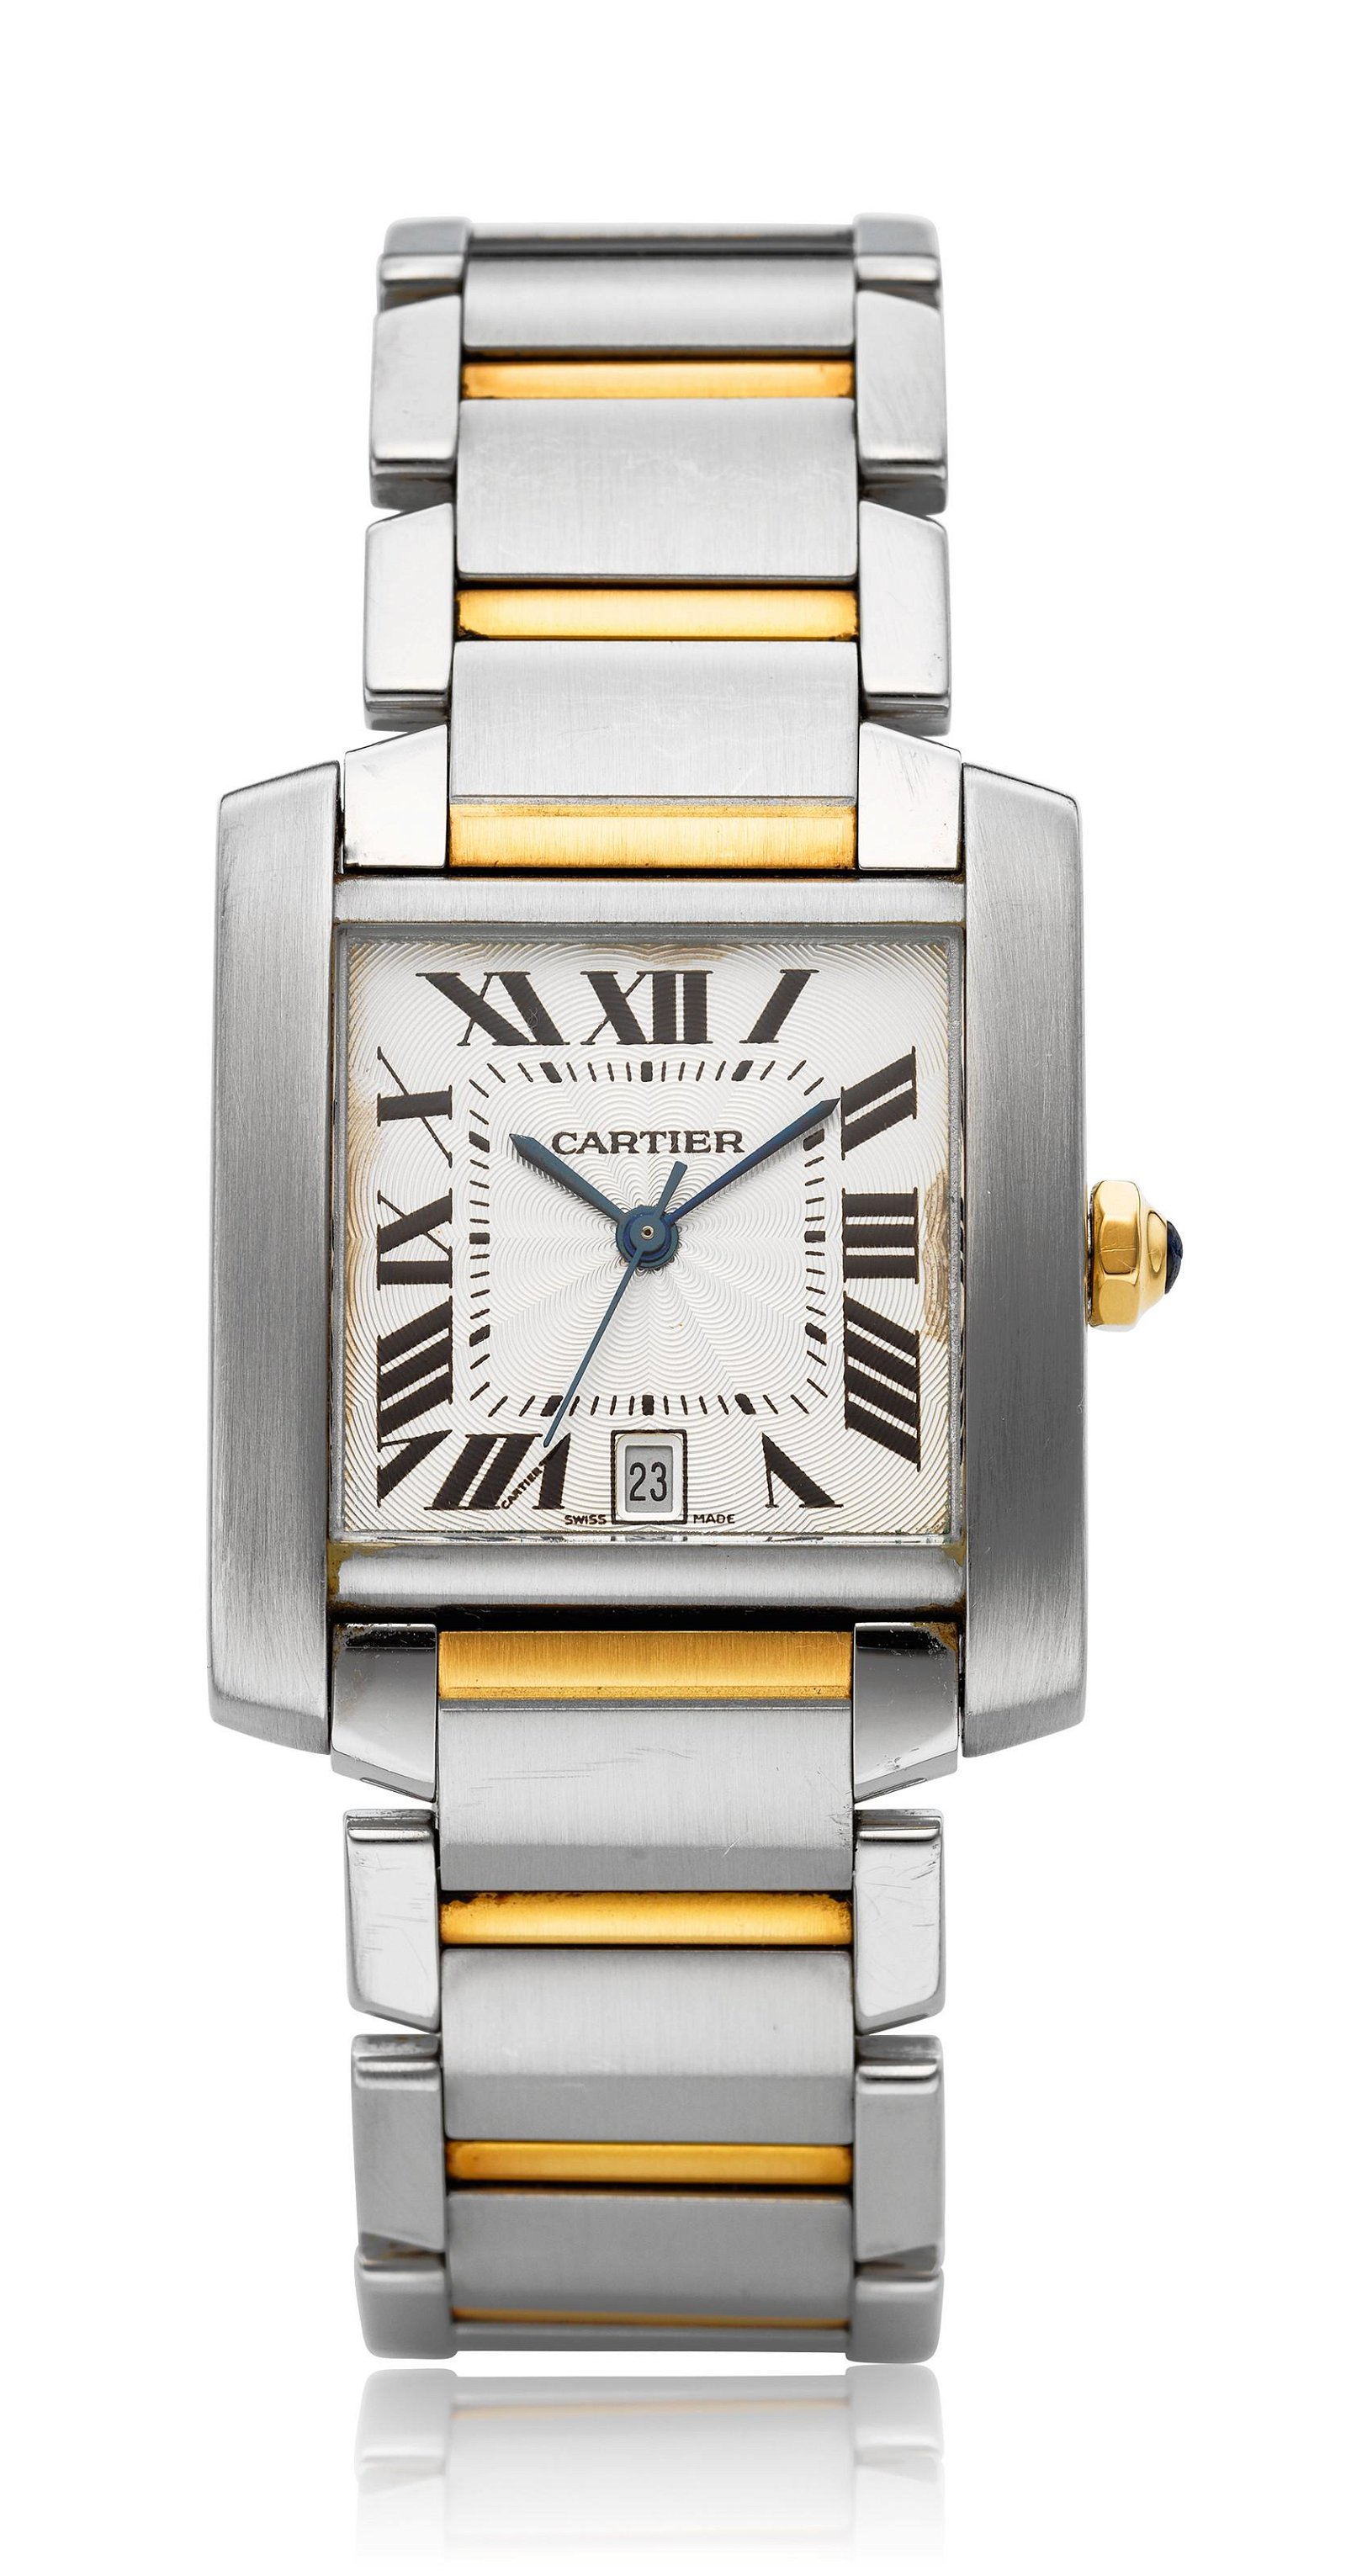 CARTIER, TWO-TONE TANK FRANCAISE, REF. 2302